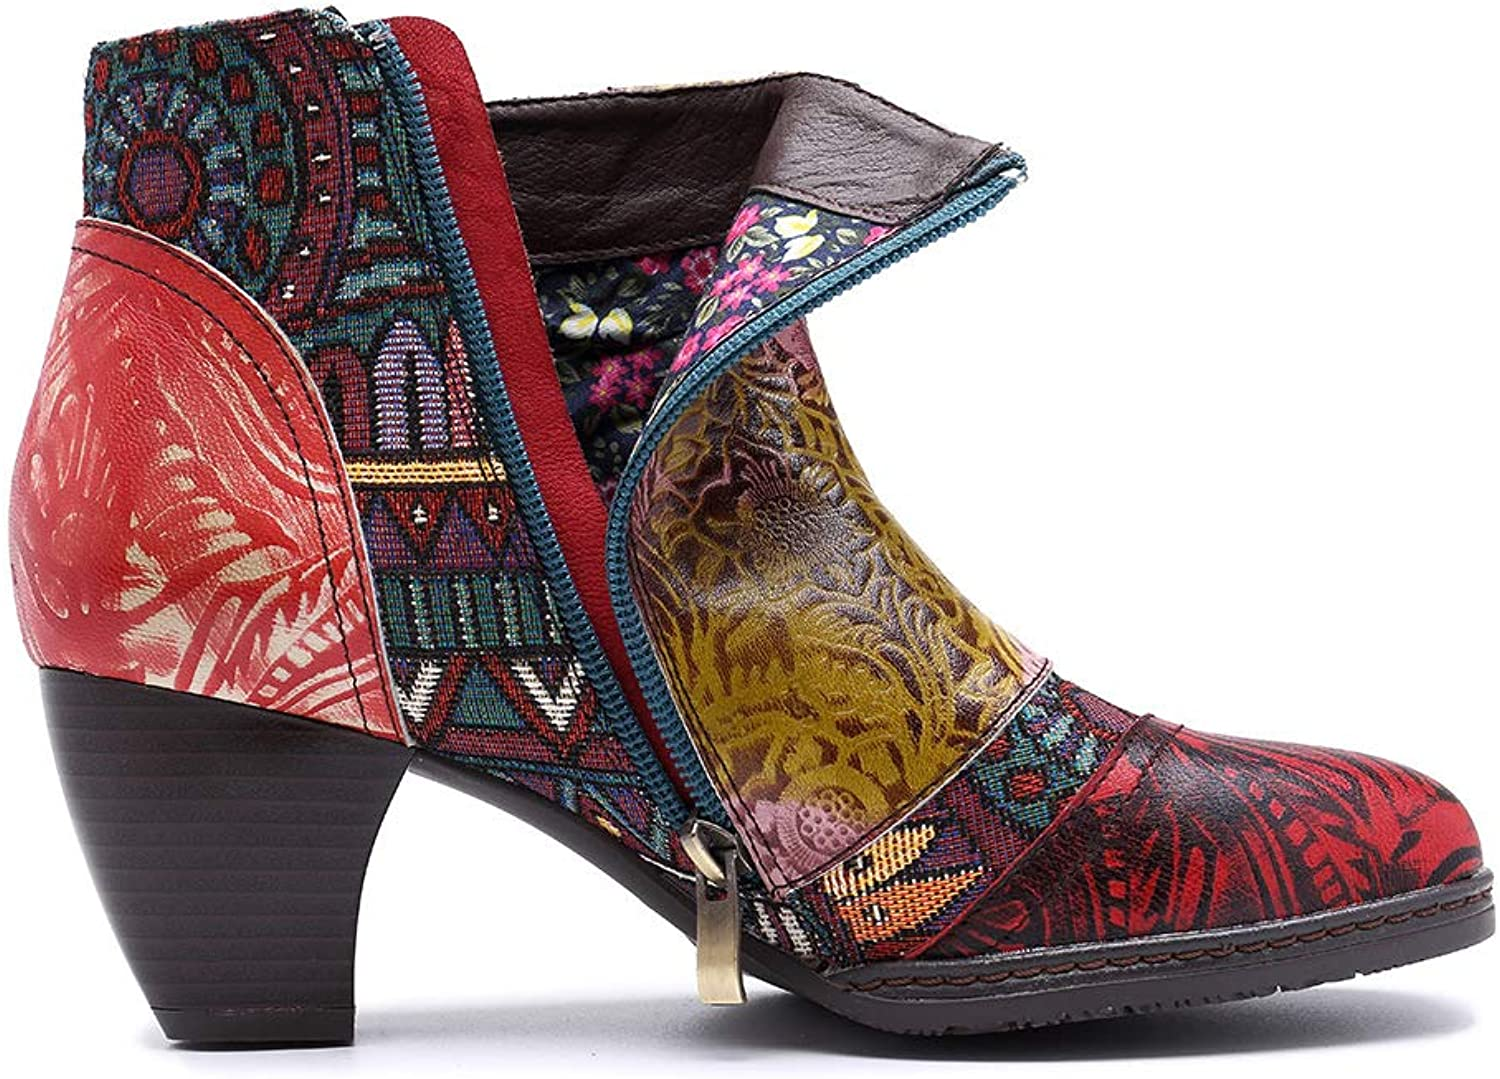 Women's Leather Ankle Boots, Casual Oxford Boots Block Heels with Bohemian Pattern Warm Boot Brown